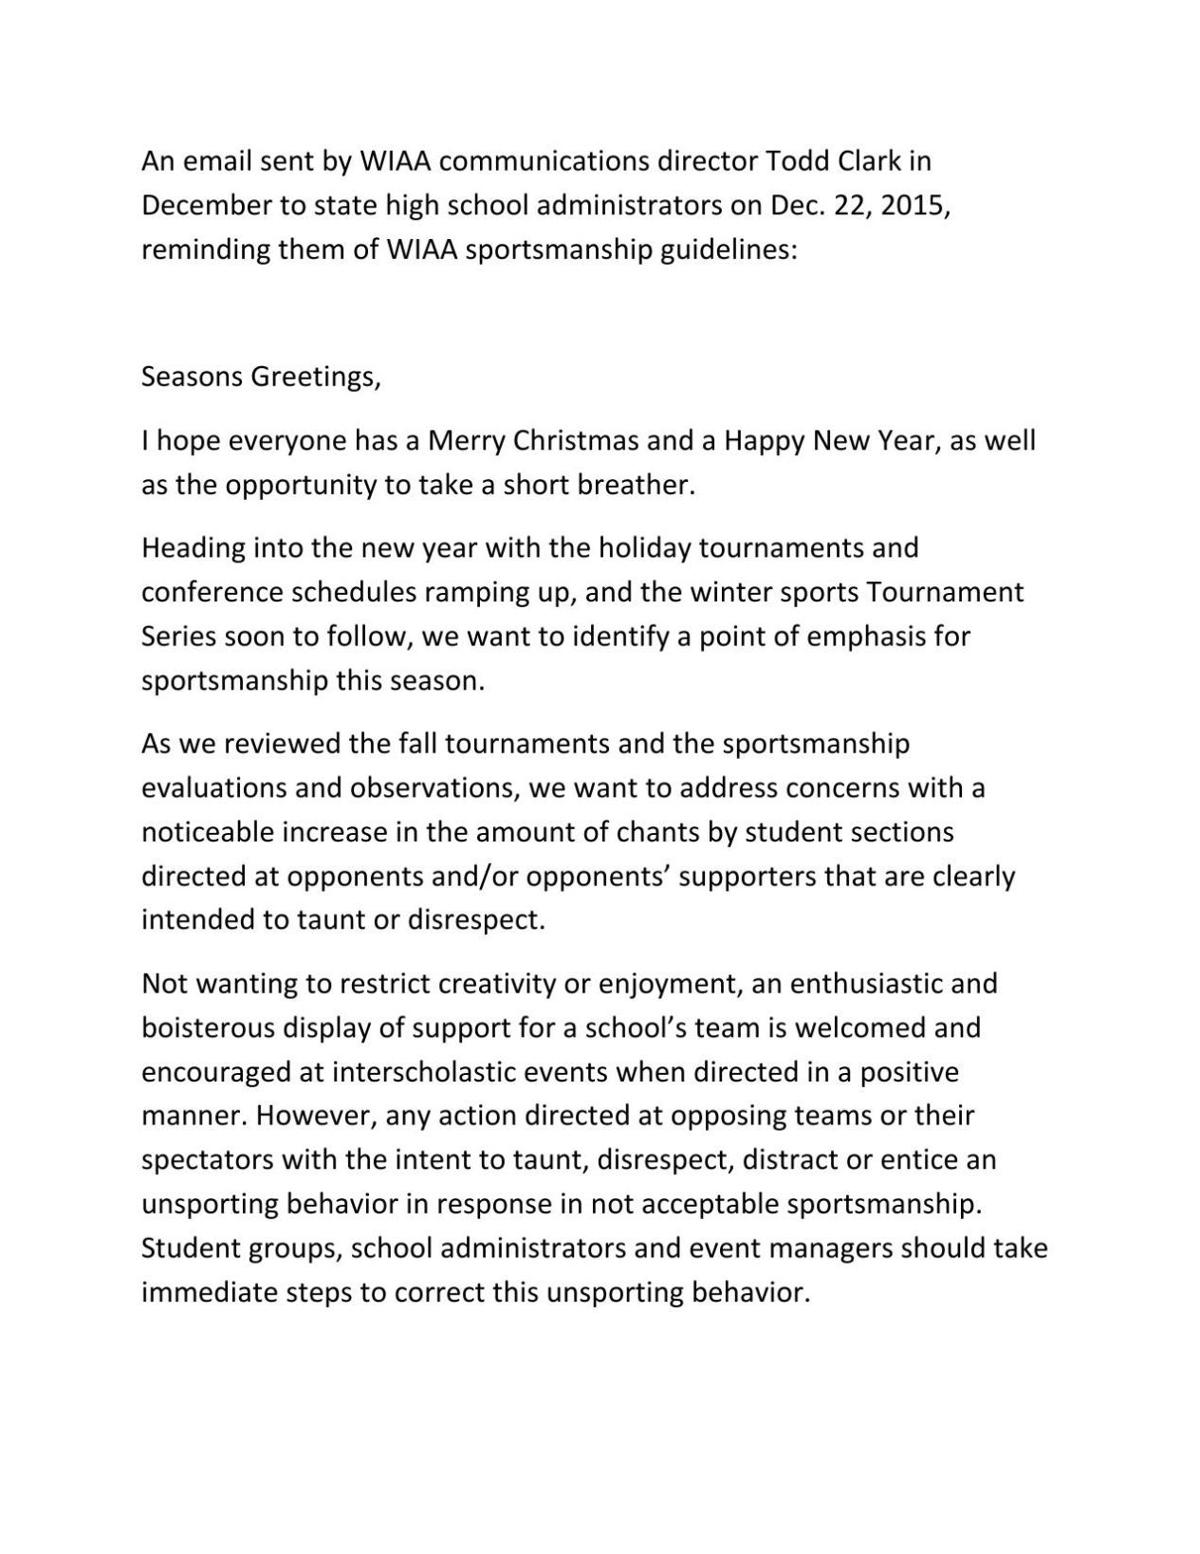 Dec. 22 letter on sportsmanship sent by WIAA's Todd Clark to state school administrators